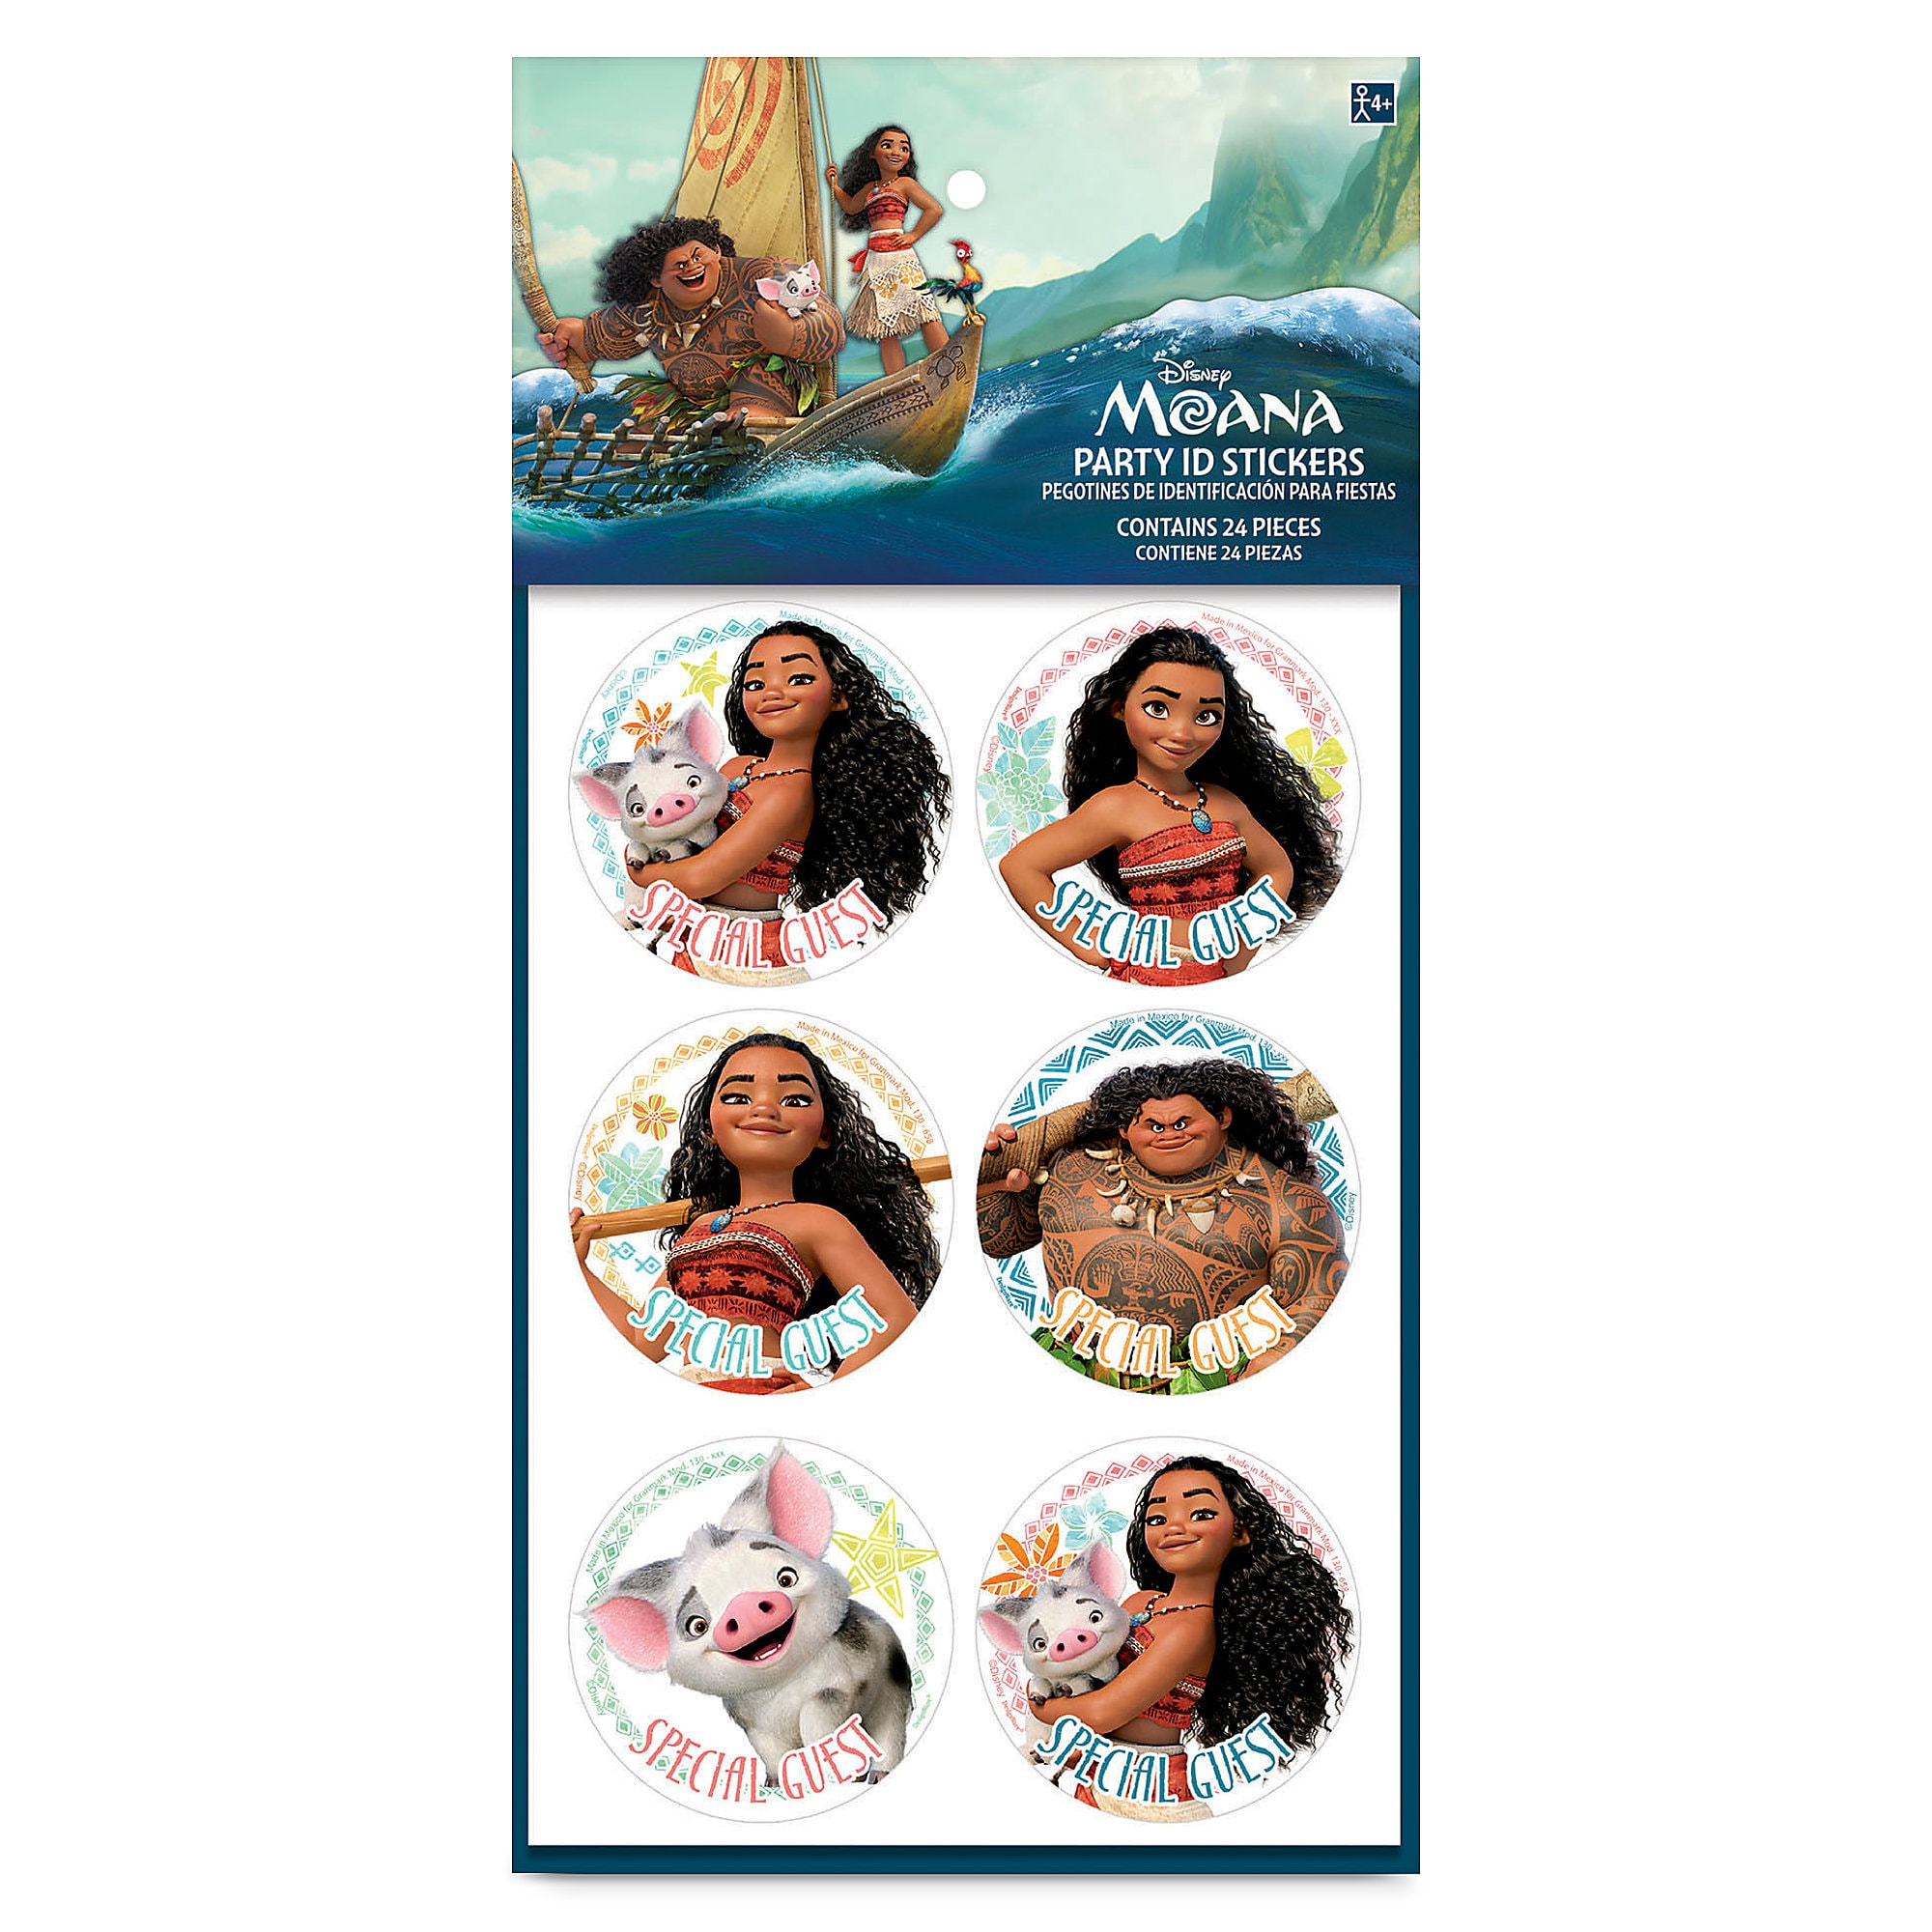 Moana Party ID Stickers - 2-Pack